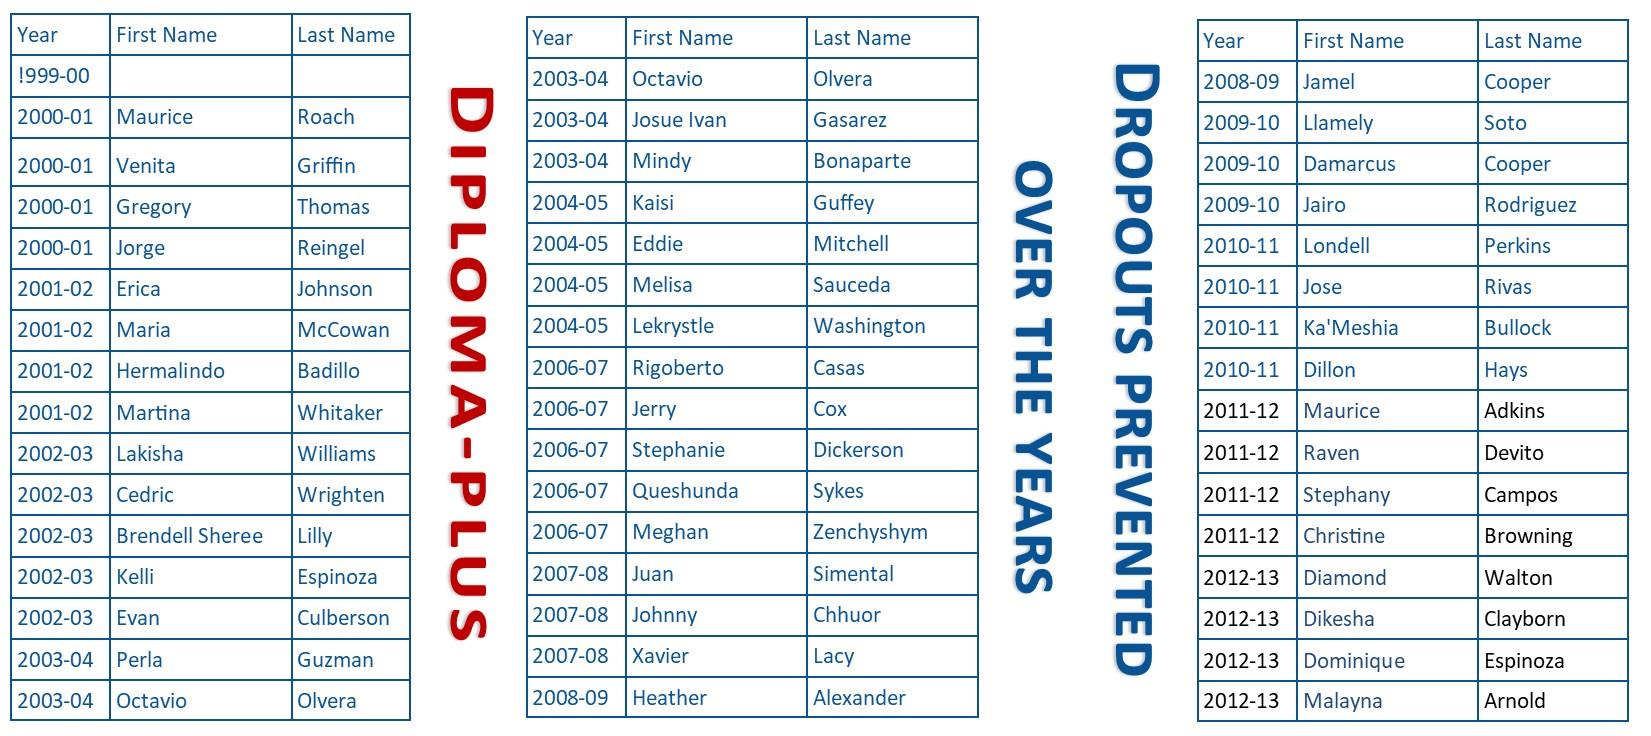 Diploma-Plus List of Students and Years